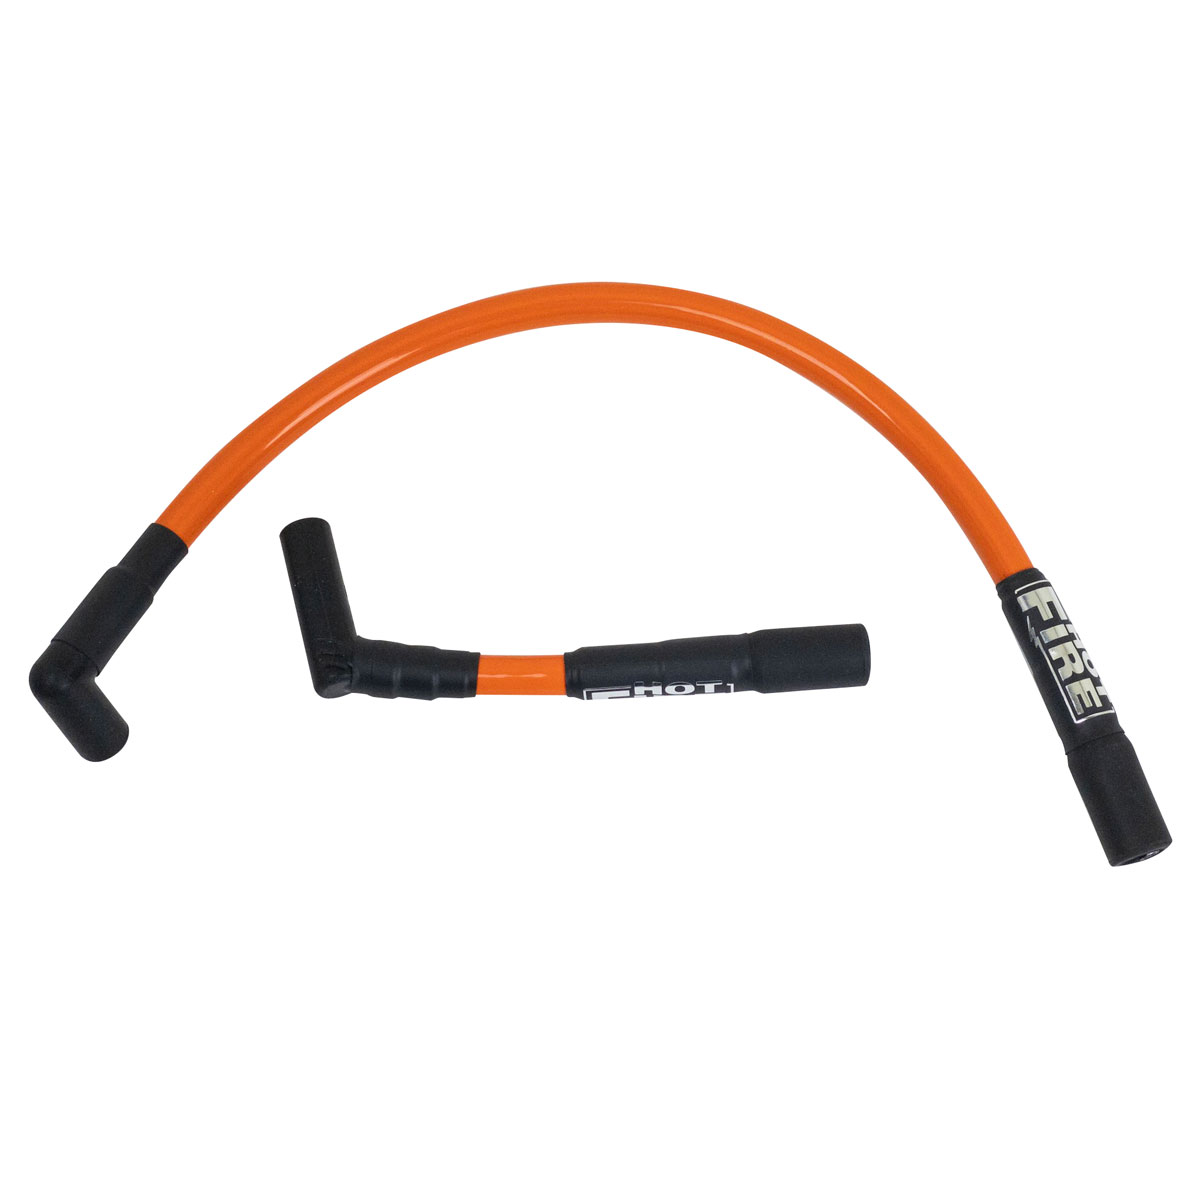 Hot fire spark plug wires orange for twin cam softail